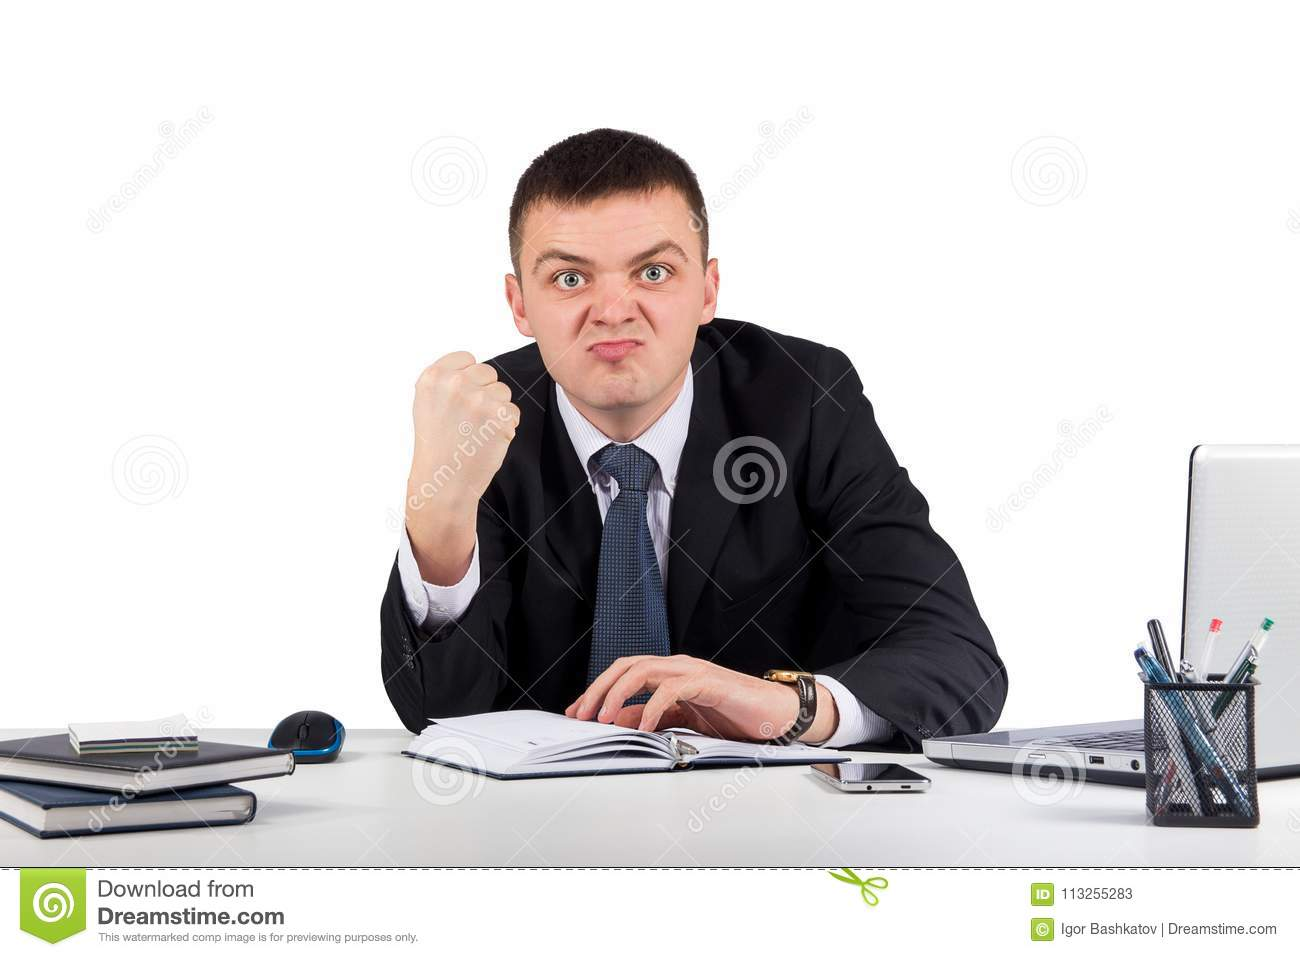 Portrait of a young angry businessman showing you his fist isolated on white background